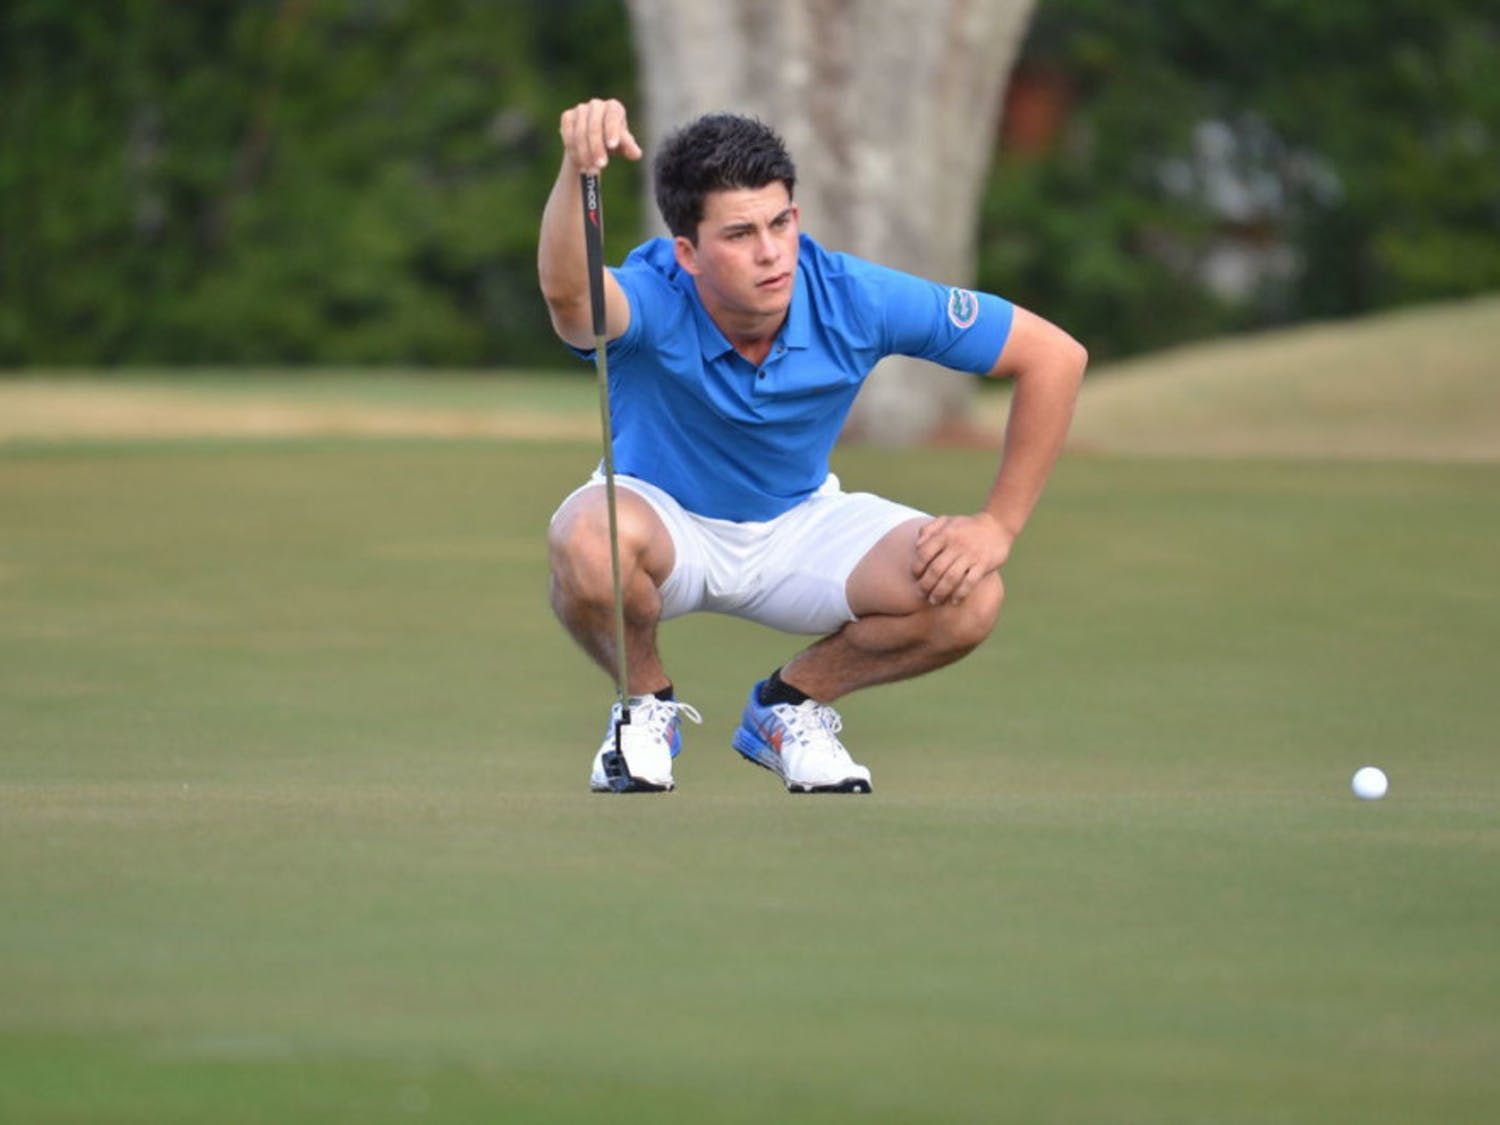 Gordon Neale finished over par for the second day in a row at the Tavistock Collegiate Invitational with a 5-over round on Monday. UF dropped from fifth to 10th and no Gator broke even in the second round.